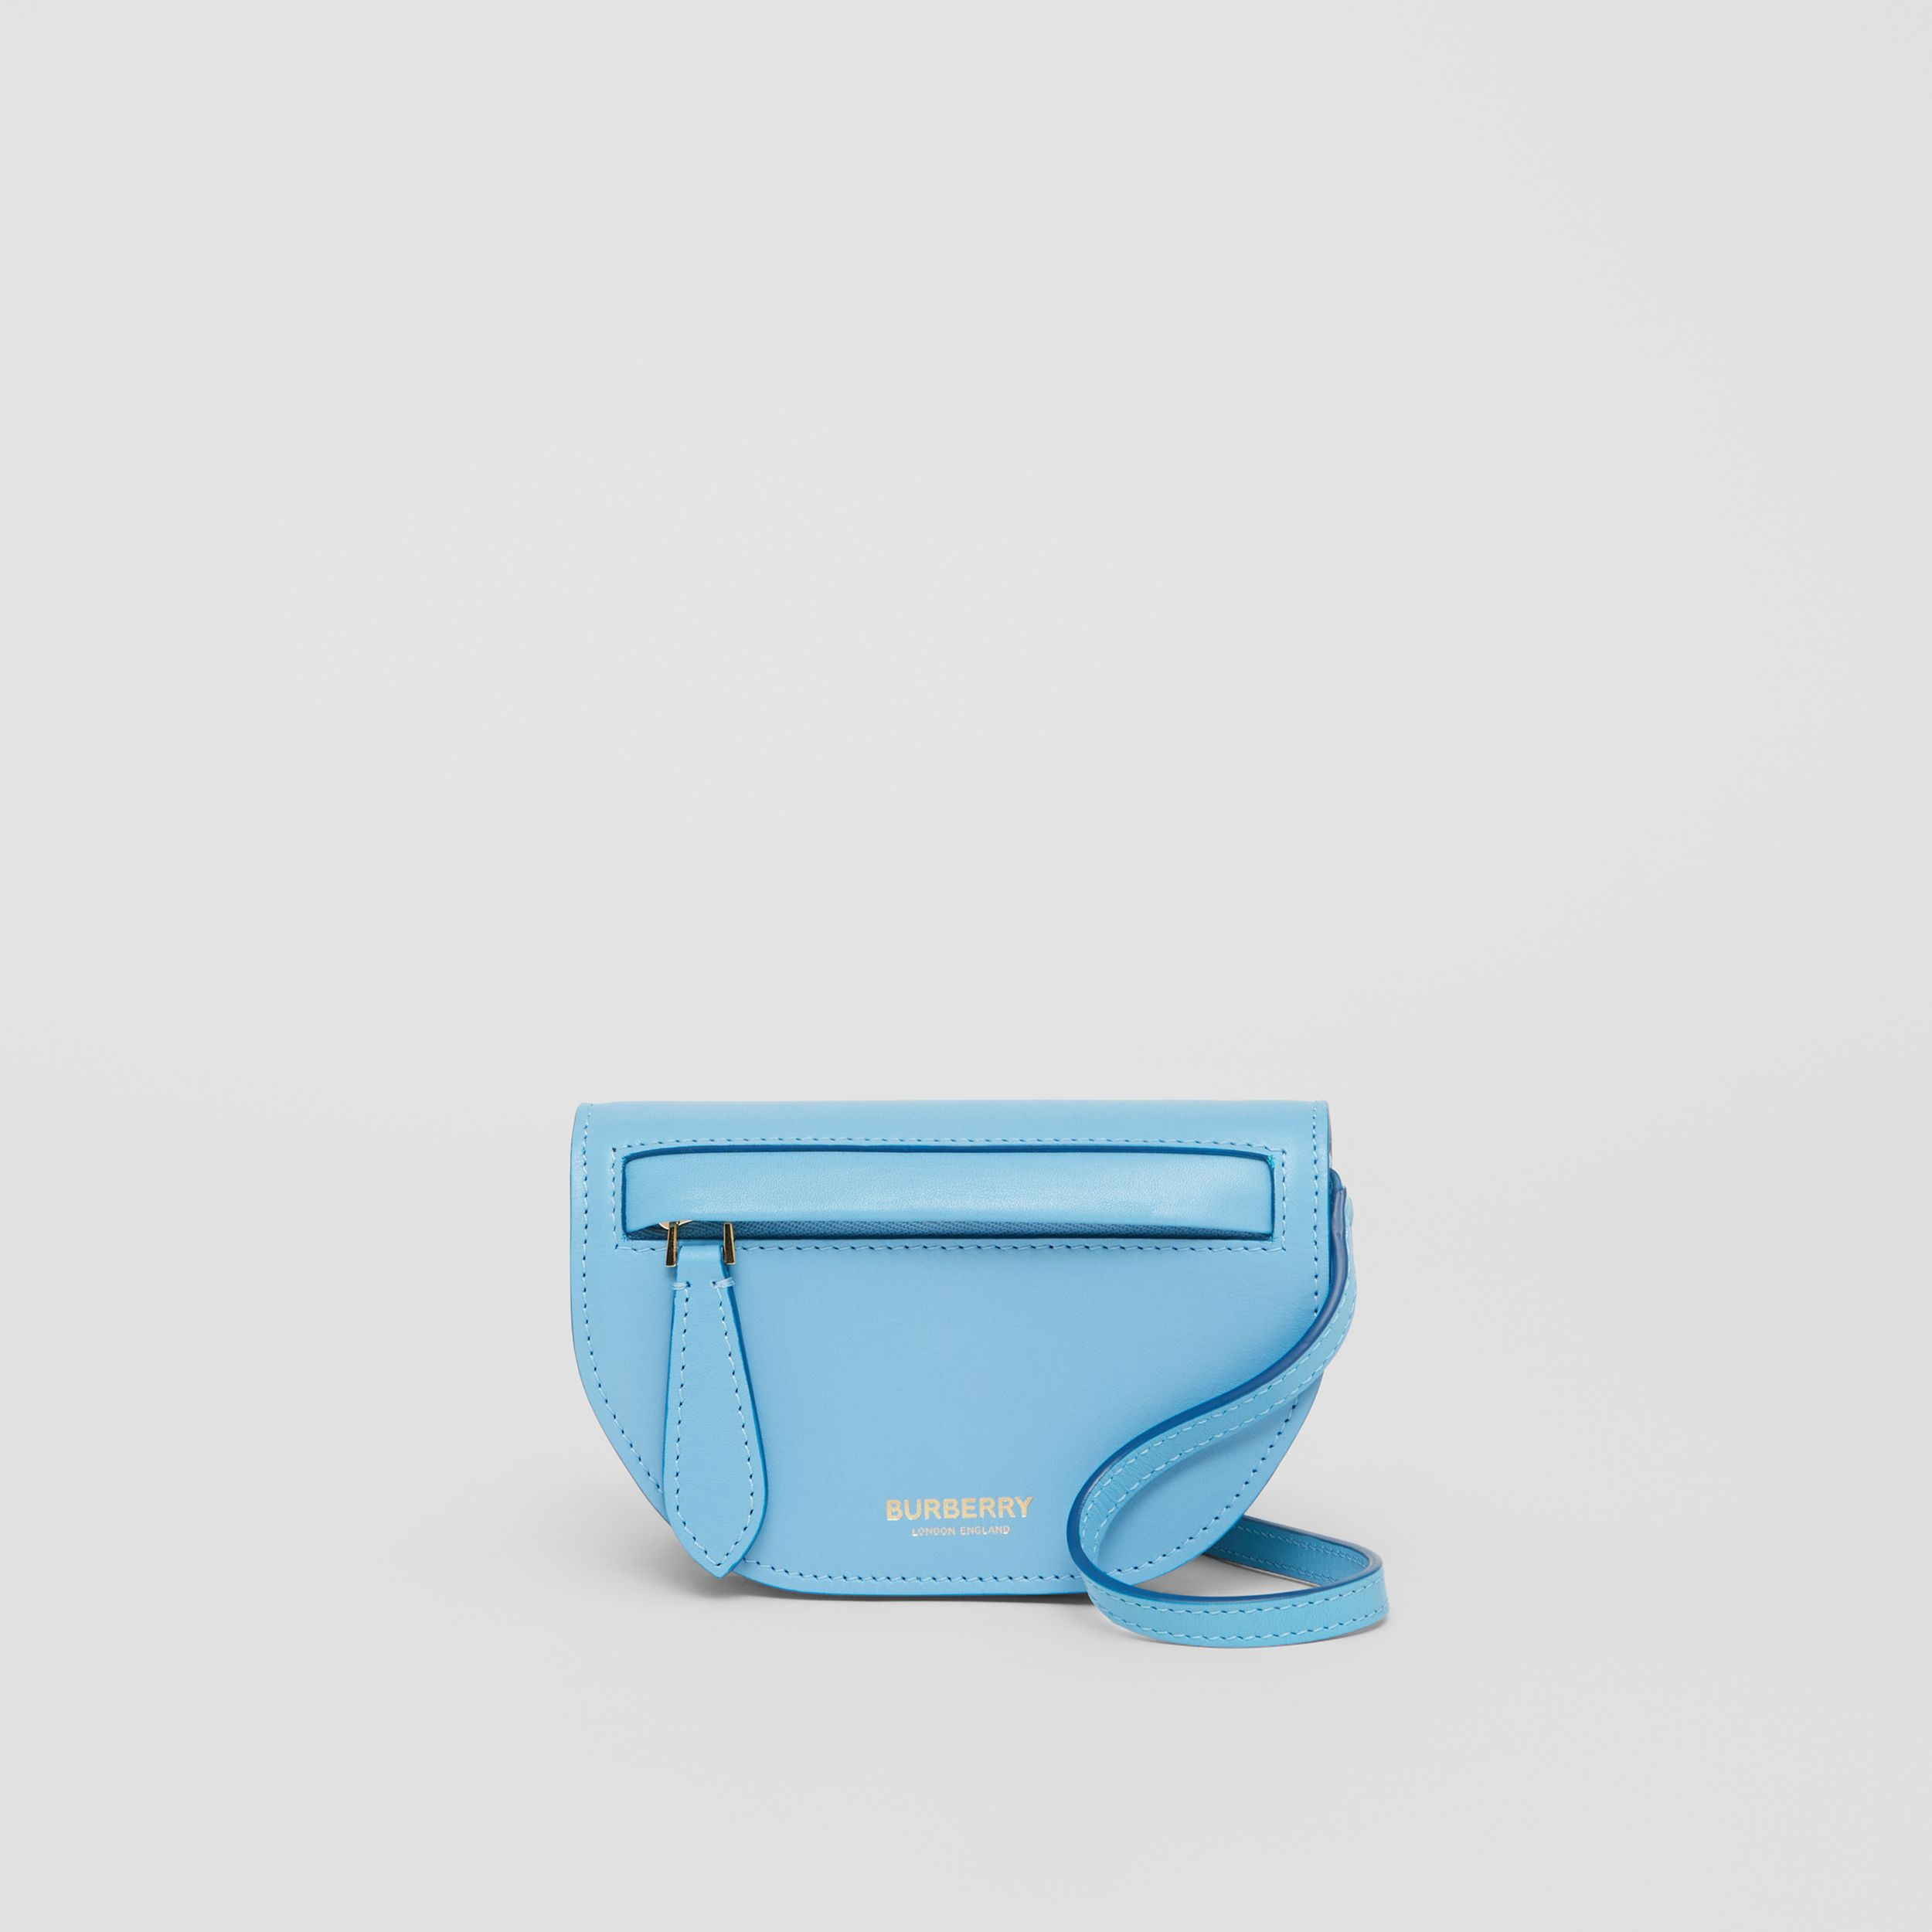 Leather Olympia Card Case with Detachable Strap in Blue Topaz | Burberry United Kingdom - 1